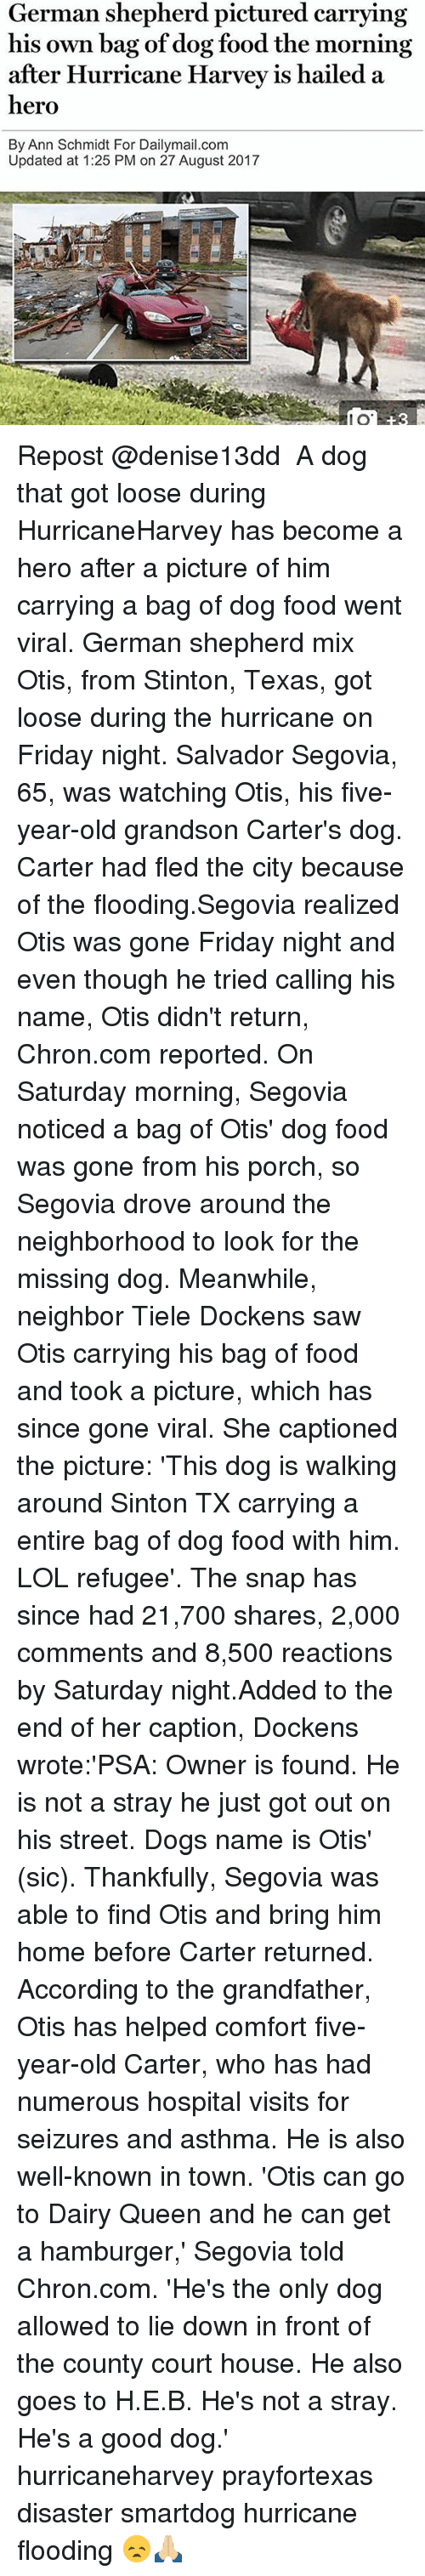 germane: German shepherd pictured carrying  his own bag of dog food the morning  after Hurricane Harvev is hailed a  hero  By Ann Schmidt For Dailymail.com  Updated at 1:25 PM on 27 August 2017  80  8 Repost @denise13dd ・・・ A dog that got loose during HurricaneHarvey has become a hero after a picture of him carrying a bag of dog food went viral. German shepherd mix Otis, from Stinton, Texas, got loose during the hurricane on Friday night. Salvador Segovia, 65, was watching Otis, his five-year-old grandson Carter's dog. Carter had fled the city because of the flooding.Segovia realized Otis was gone Friday night and even though he tried calling his name, Otis didn't return, Chron.com reported. On Saturday morning, Segovia noticed a bag of Otis' dog food was gone from his porch, so Segovia drove around the neighborhood to look for the missing dog. Meanwhile, neighbor Tiele Dockens saw Otis carrying his bag of food and took a picture, which has since gone viral. She captioned the picture: 'This dog is walking around Sinton TX carrying a entire bag of dog food with him. LOL refugee'. The snap has since had 21,700 shares, 2,000 comments and 8,500 reactions by Saturday night.Added to the end of her caption, Dockens wrote:'PSA: Owner is found. He is not a stray he just got out on his street. Dogs name is Otis' (sic). Thankfully, Segovia was able to find Otis and bring him home before Carter returned. According to the grandfather, Otis has helped comfort five-year-old Carter, who has had numerous hospital visits for seizures and asthma. He is also well-known in town. 'Otis can go to Dairy Queen and he can get a hamburger,' Segovia told Chron.com. 'He's the only dog allowed to lie down in front of the county court house. He also goes to H.E.B. He's not a stray. He's a good dog.' hurricaneharvey prayfortexas disaster smartdog hurricane flooding 😞🙏🏼